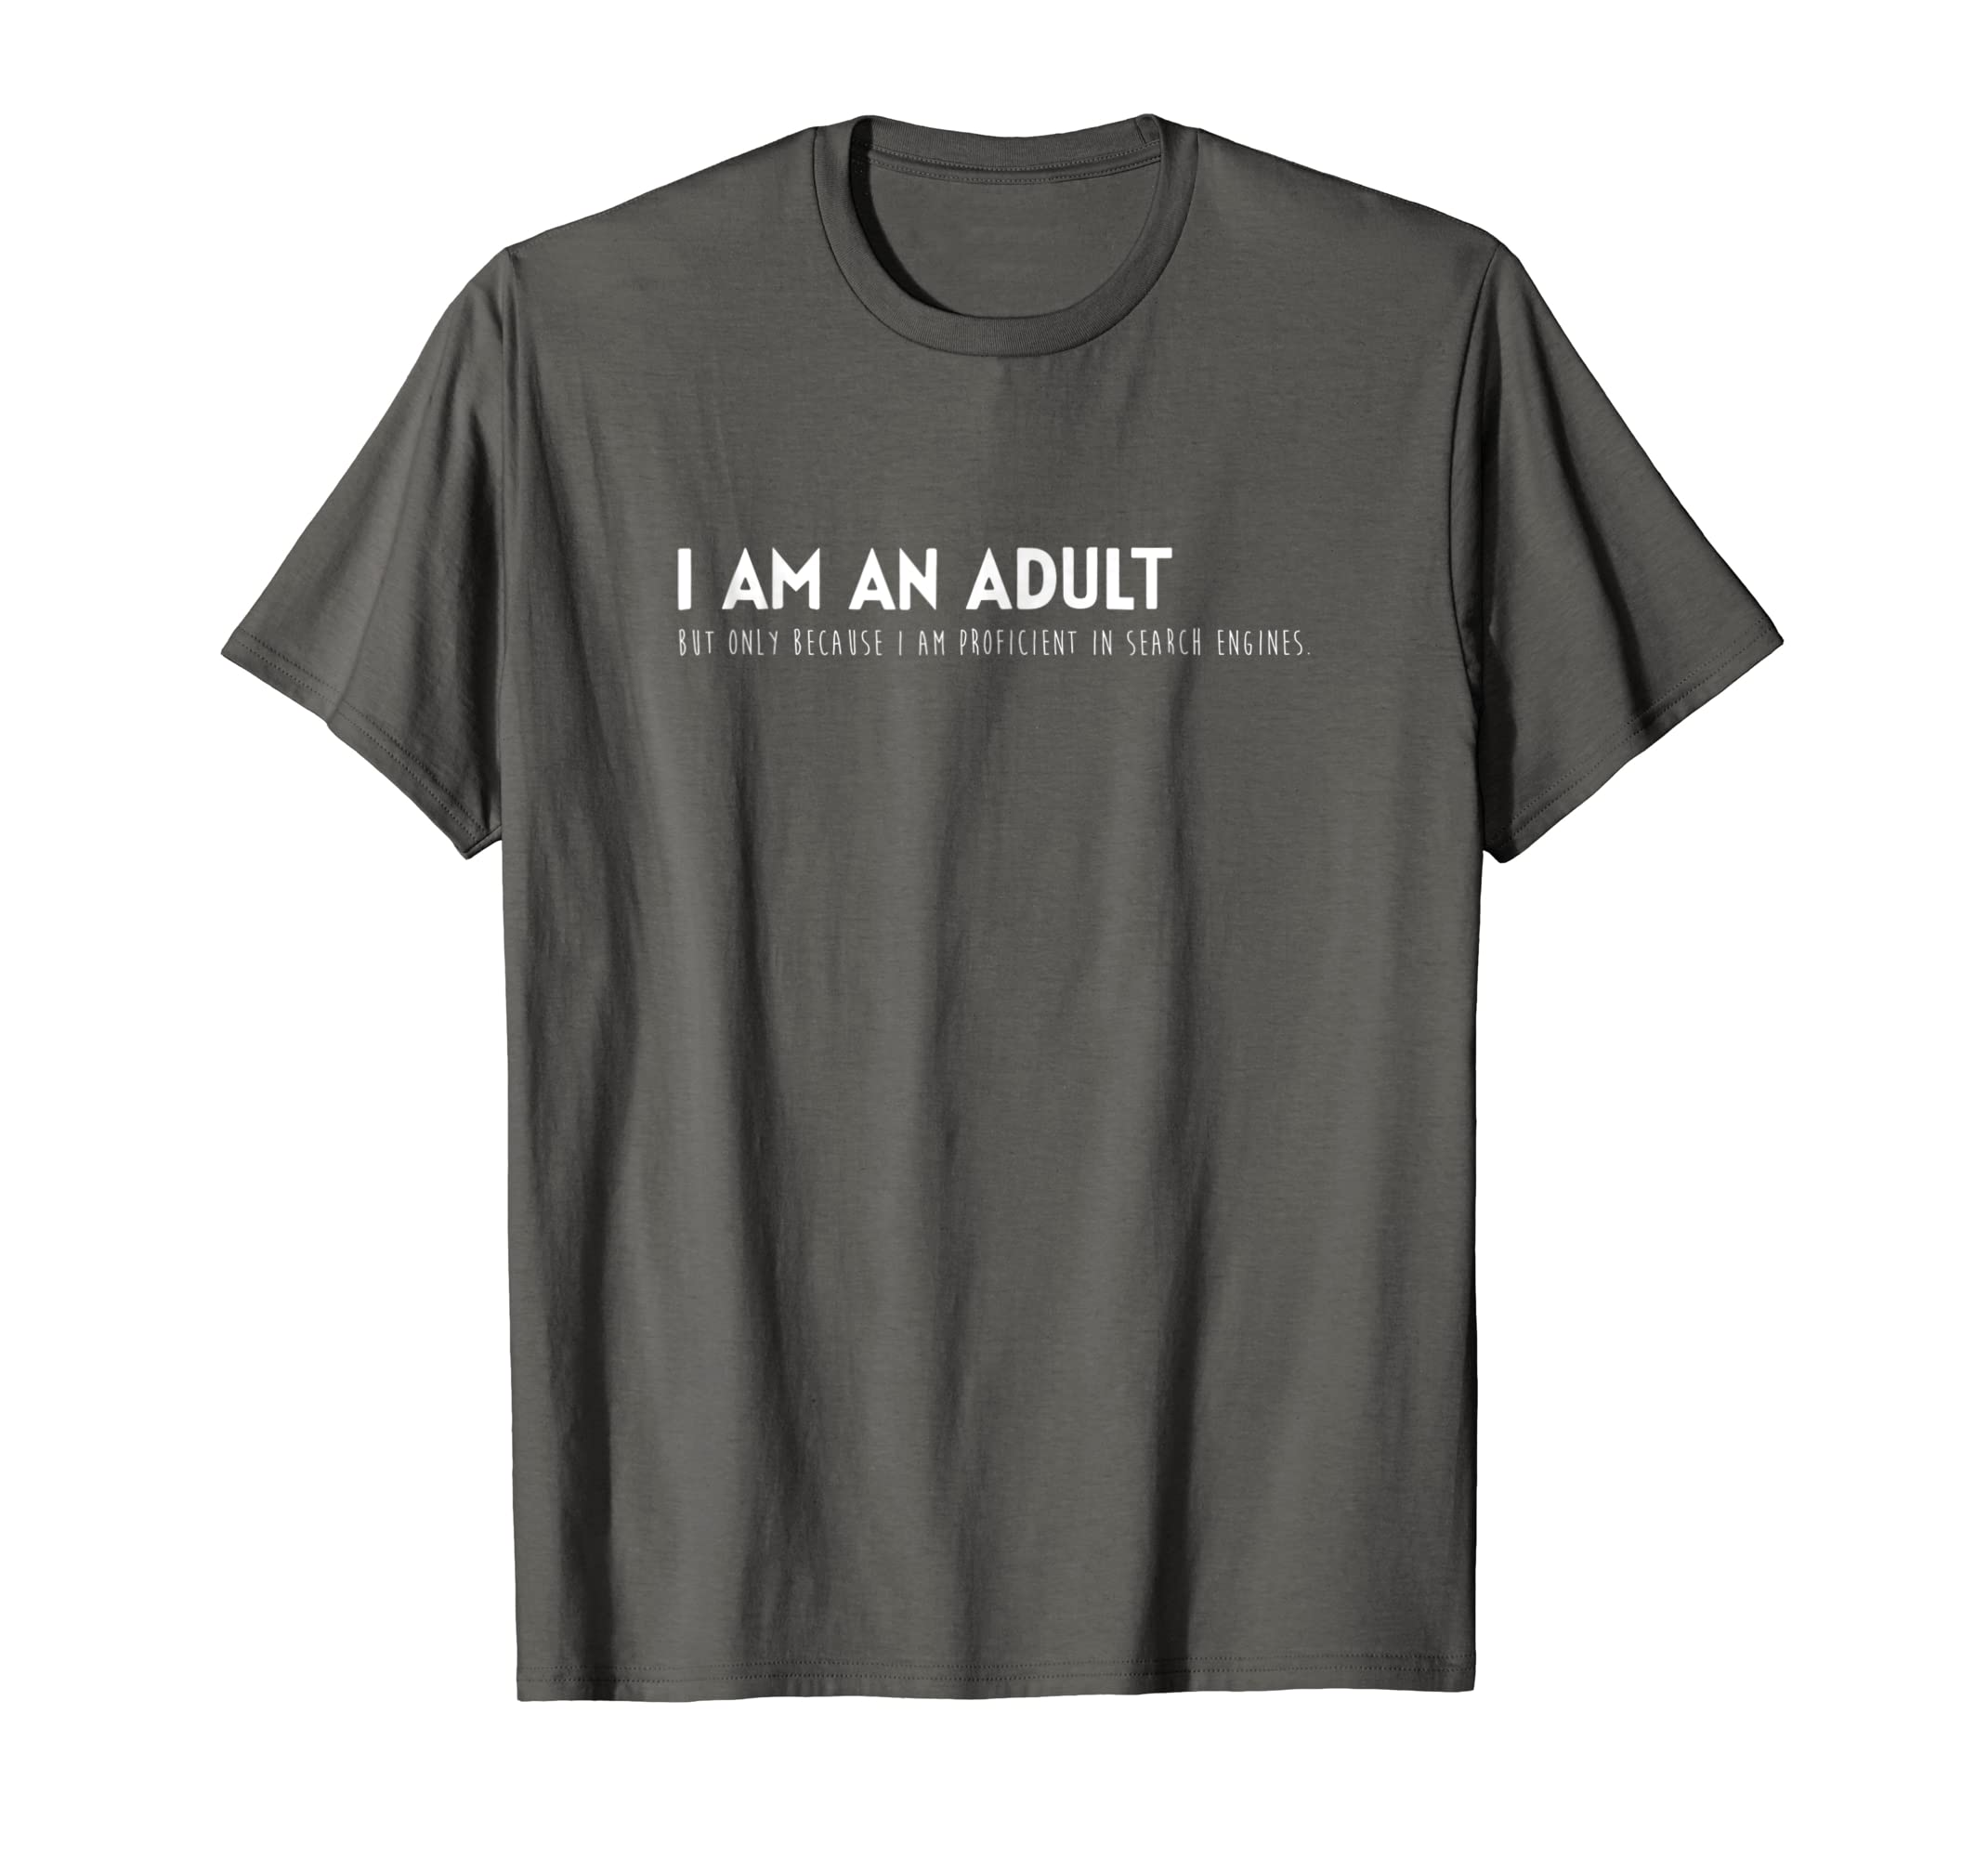 Amazon.com: I Am An Adult Proficient in Search Engines Funny T-Shirt:  Clothing